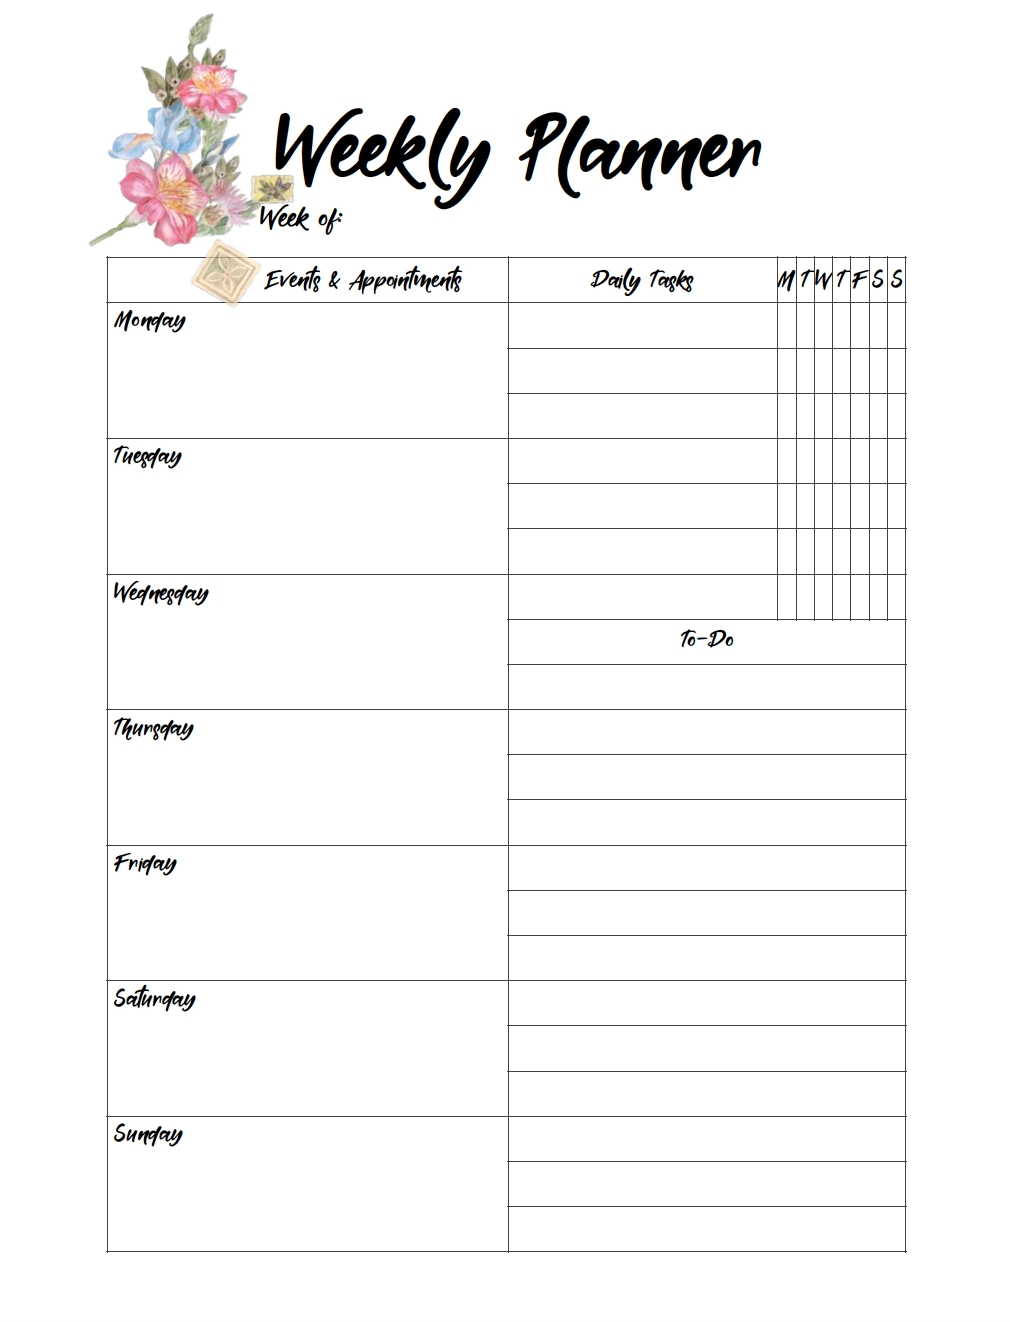 Free Printable Weekly Planners: Monday Start with Monday Through Friday Daily Planner